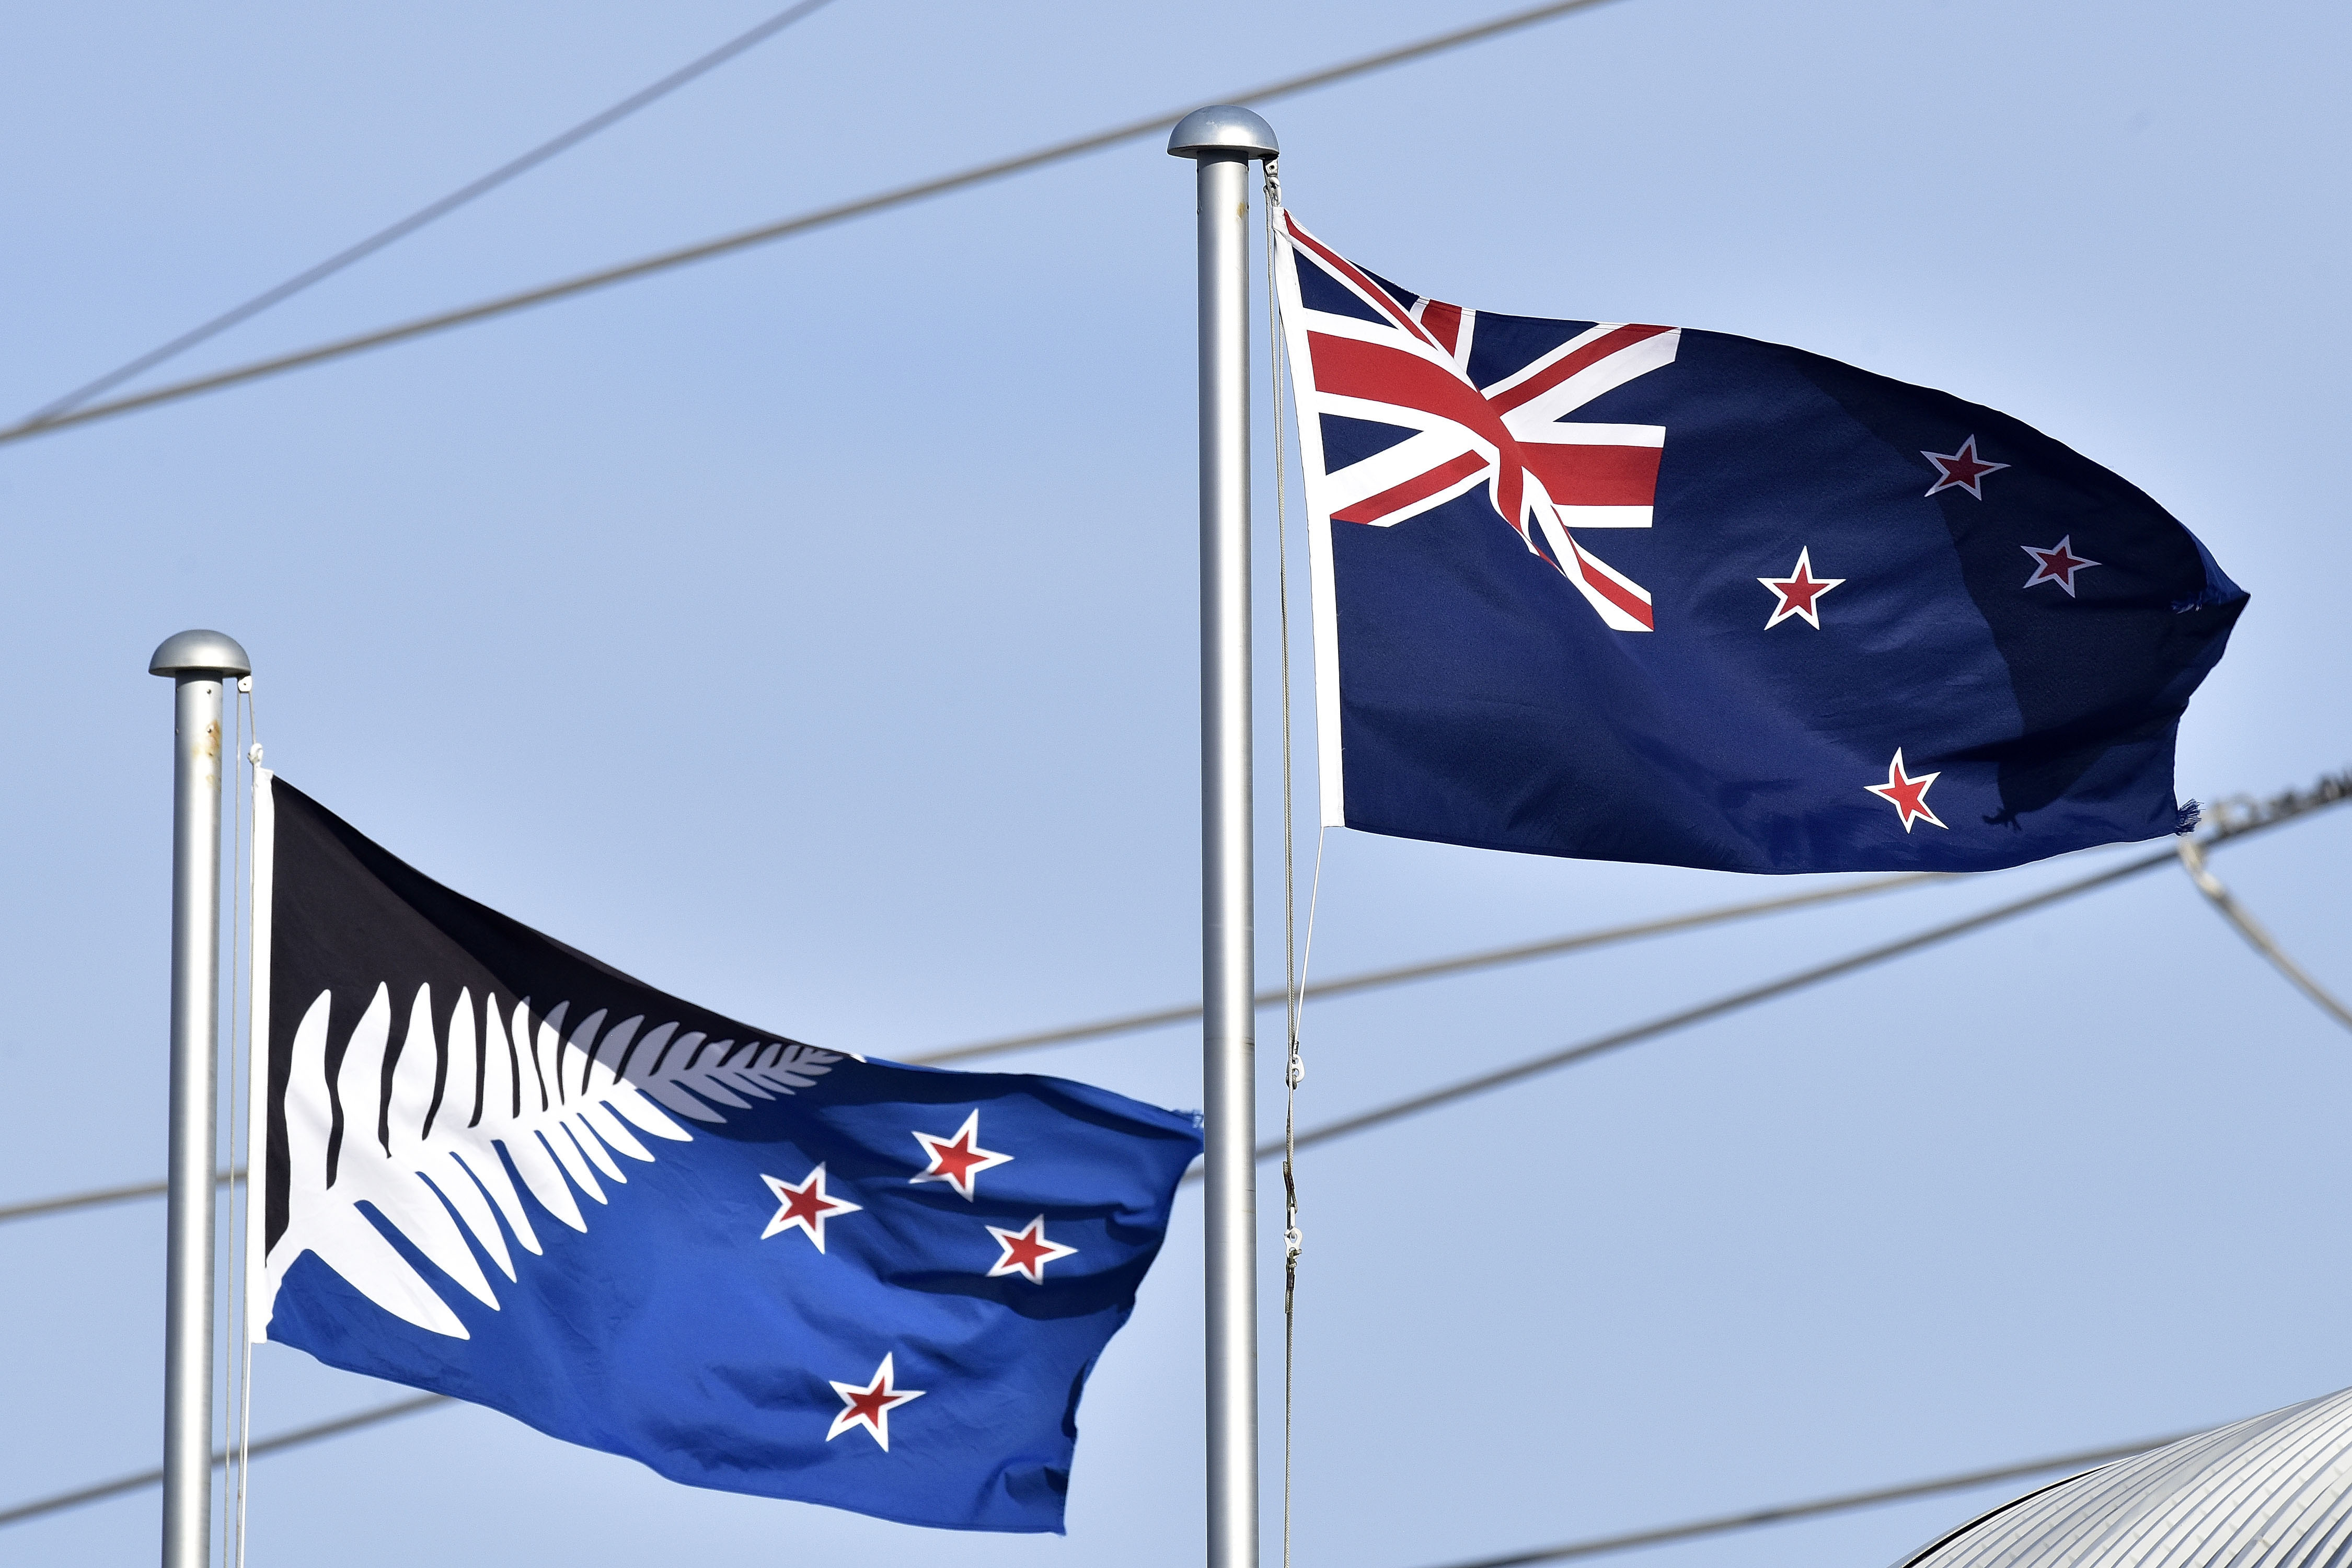 The current New Zealand flag, right, flutters next to the proposed new flag in Wellington, New Zealand, March 4, 2016.